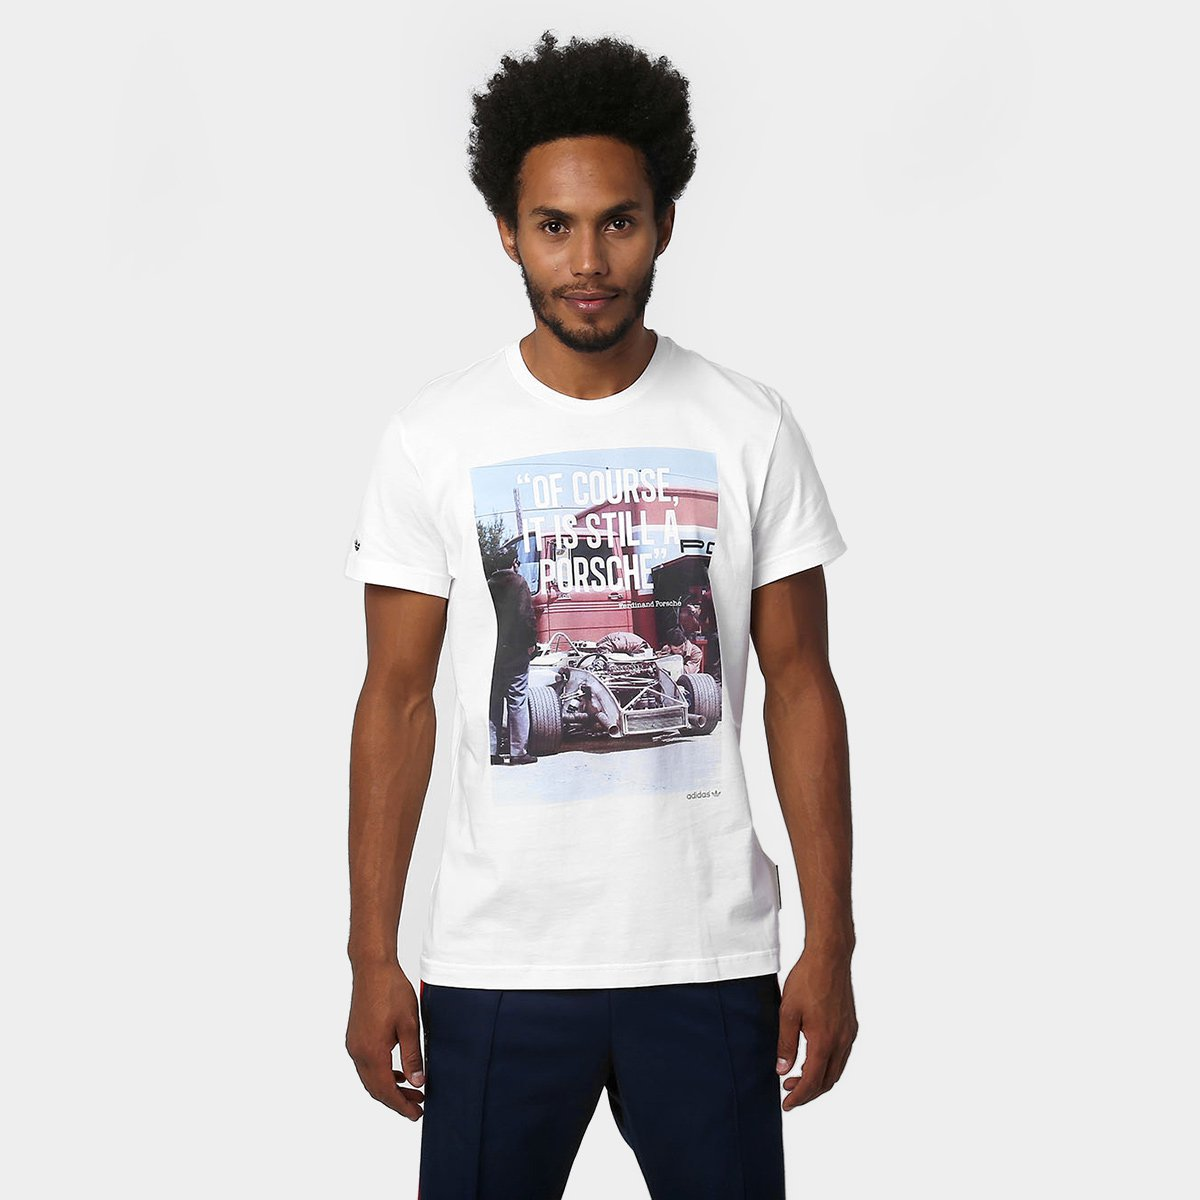 T Of Course Porsche Branco Camiseta Originals Adidas yIYv7gf6b